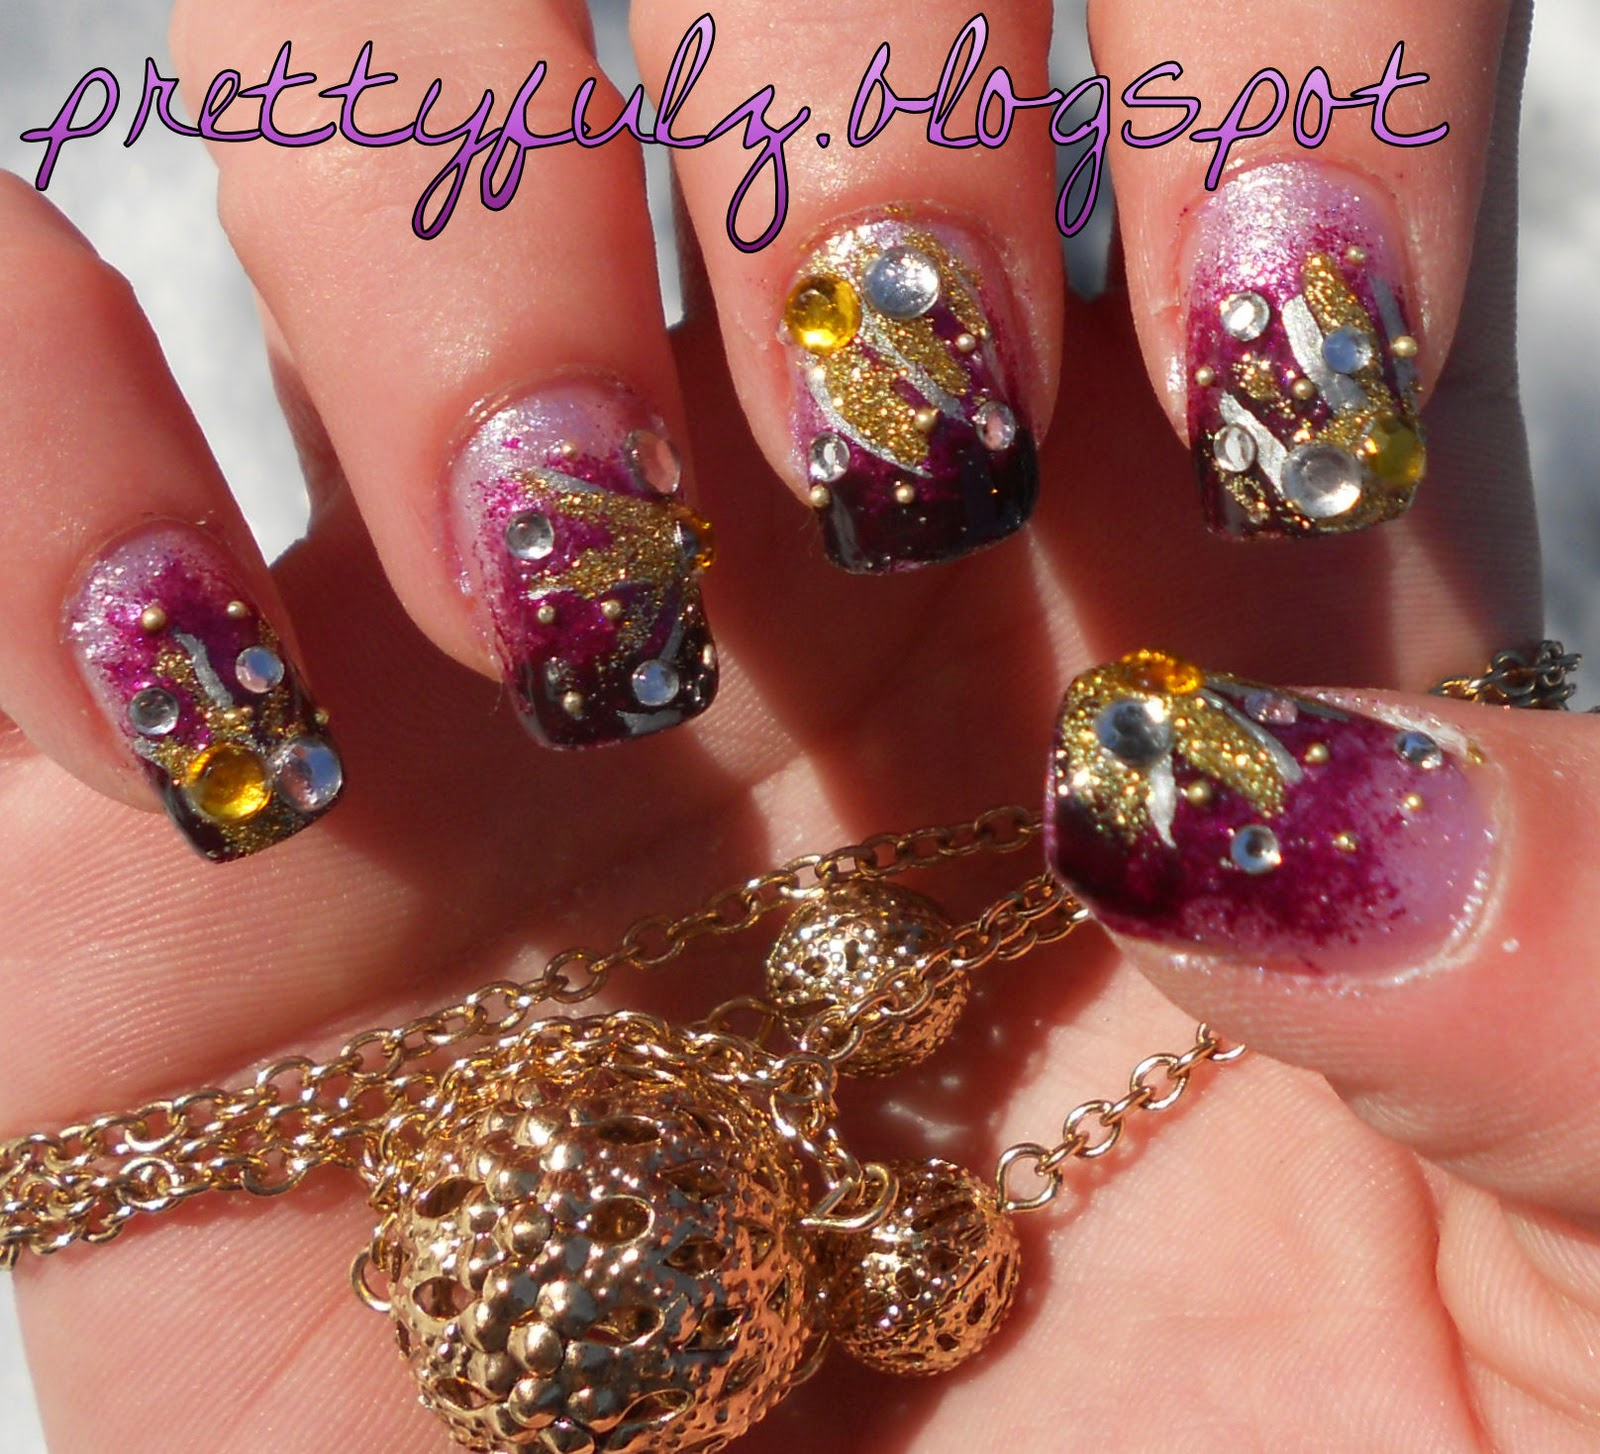 Prettyfulz: CUTE NAIL ART DESIGN